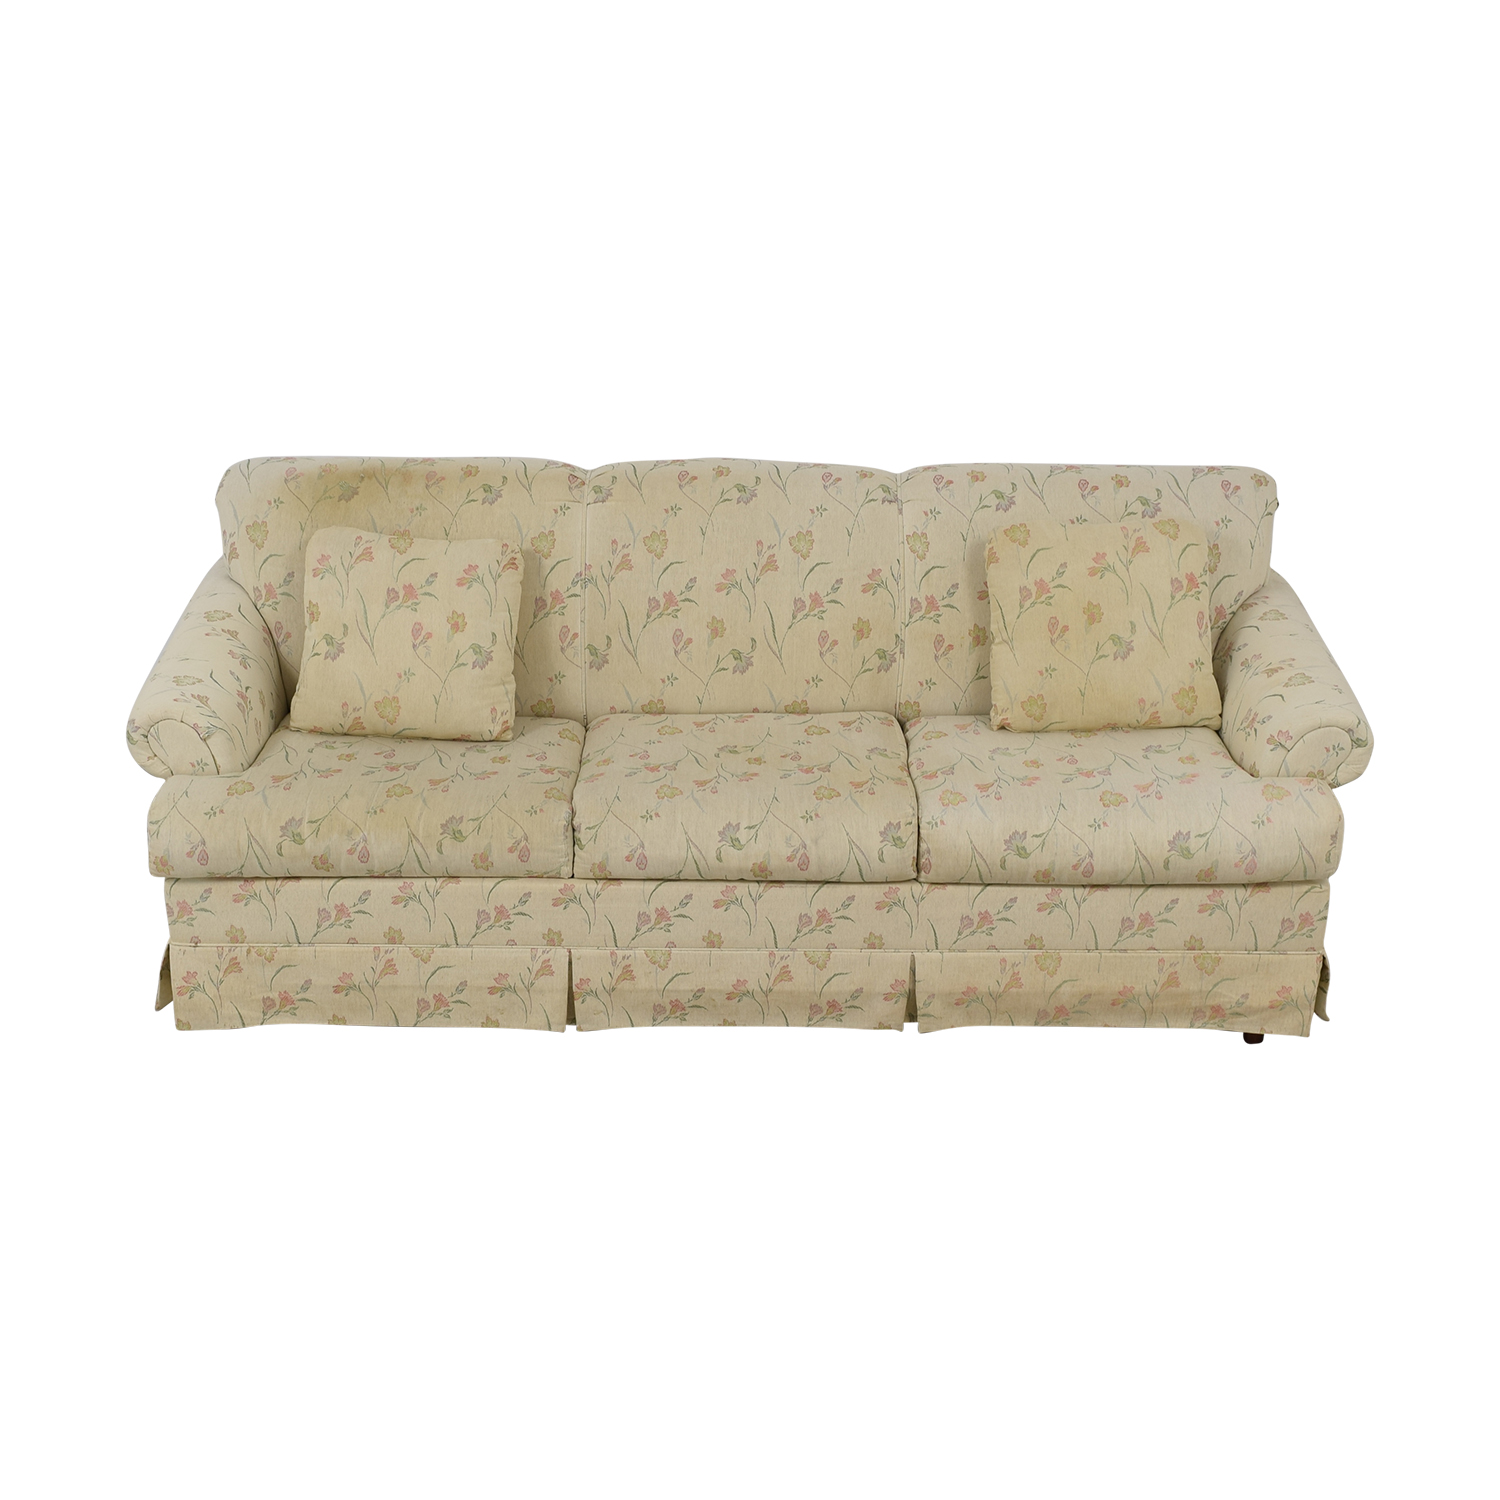 Stearns & Foster Stearns & Foster Queen Convertible Fashion Sofa